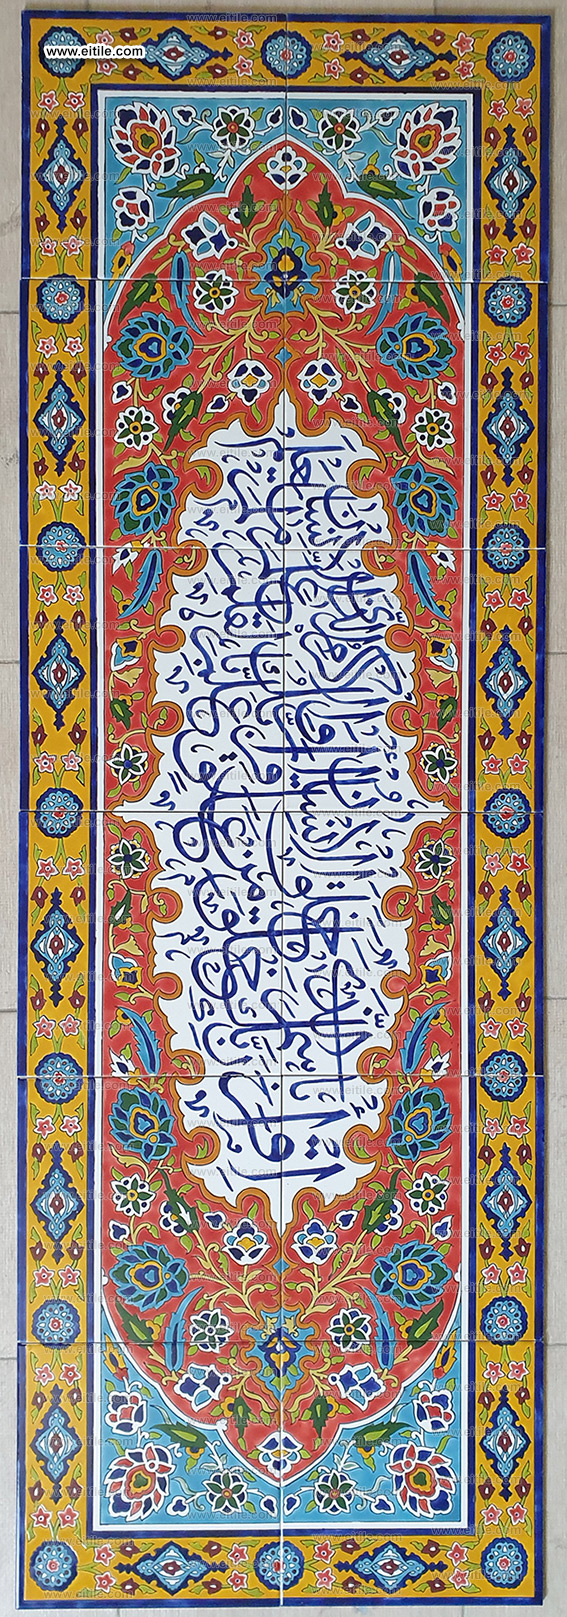 Tile panels with Arabic calligraphy, www.eitile.com